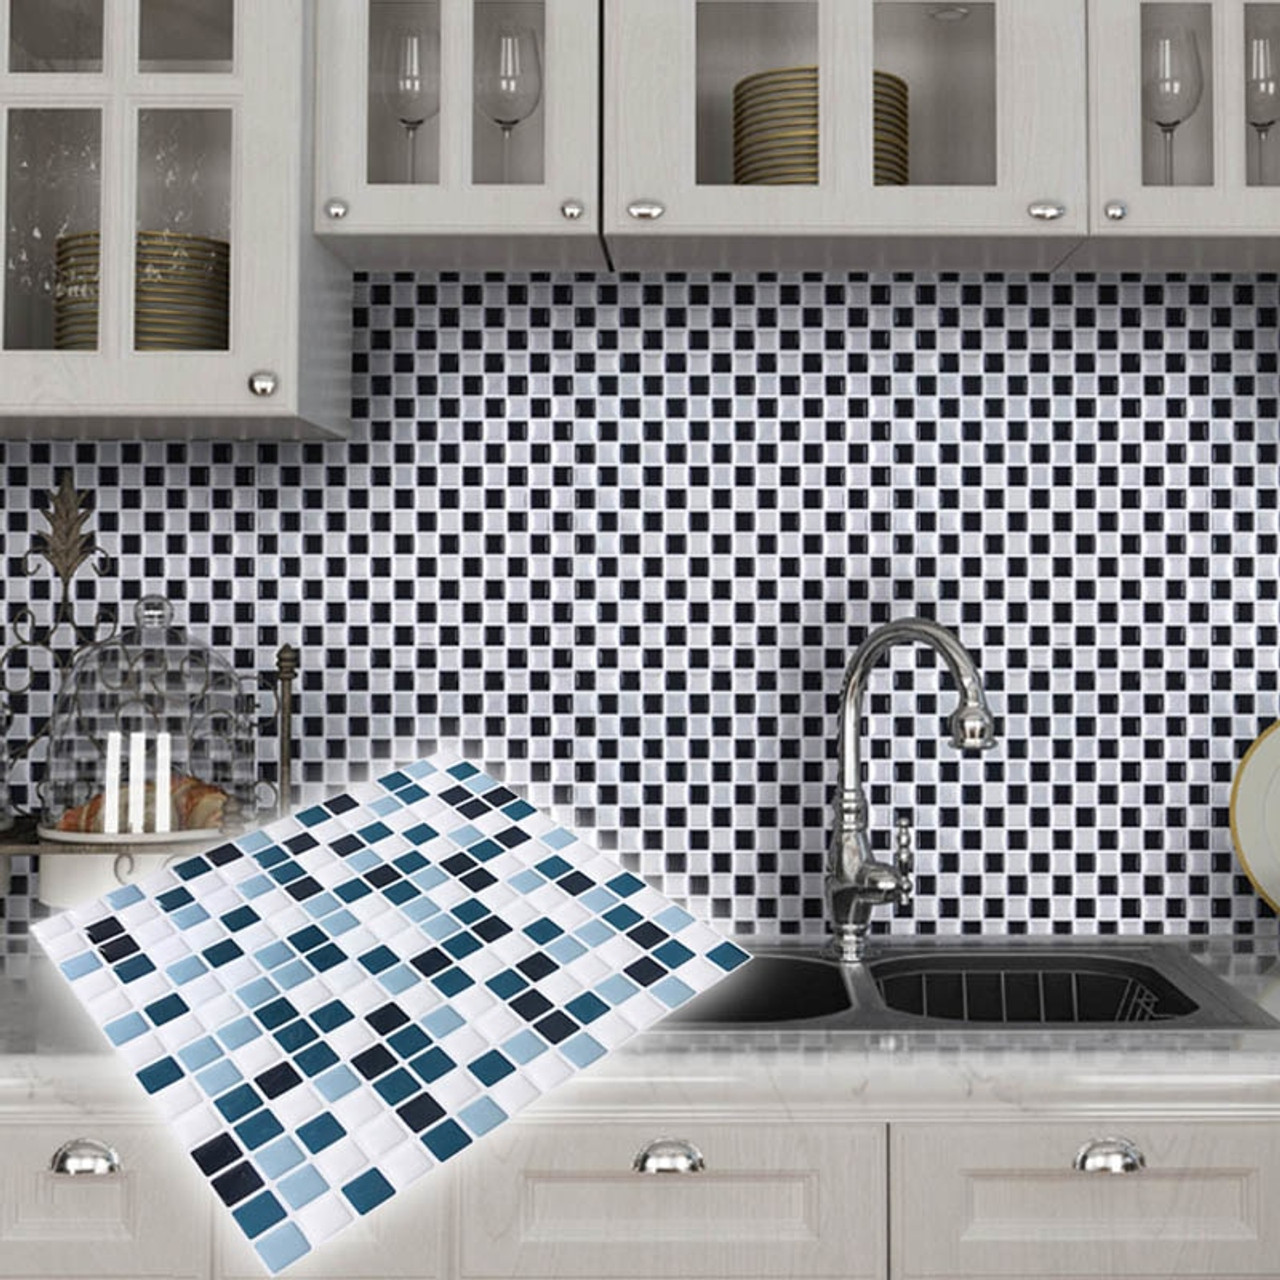 Diy Mosaic Tile Kitchen Wallpaper 3d Wall Stickers Home Decor Waterproof Pvc Bathroom Decorative Self Adhesive Kitchen Stickers Onshopdeals Com